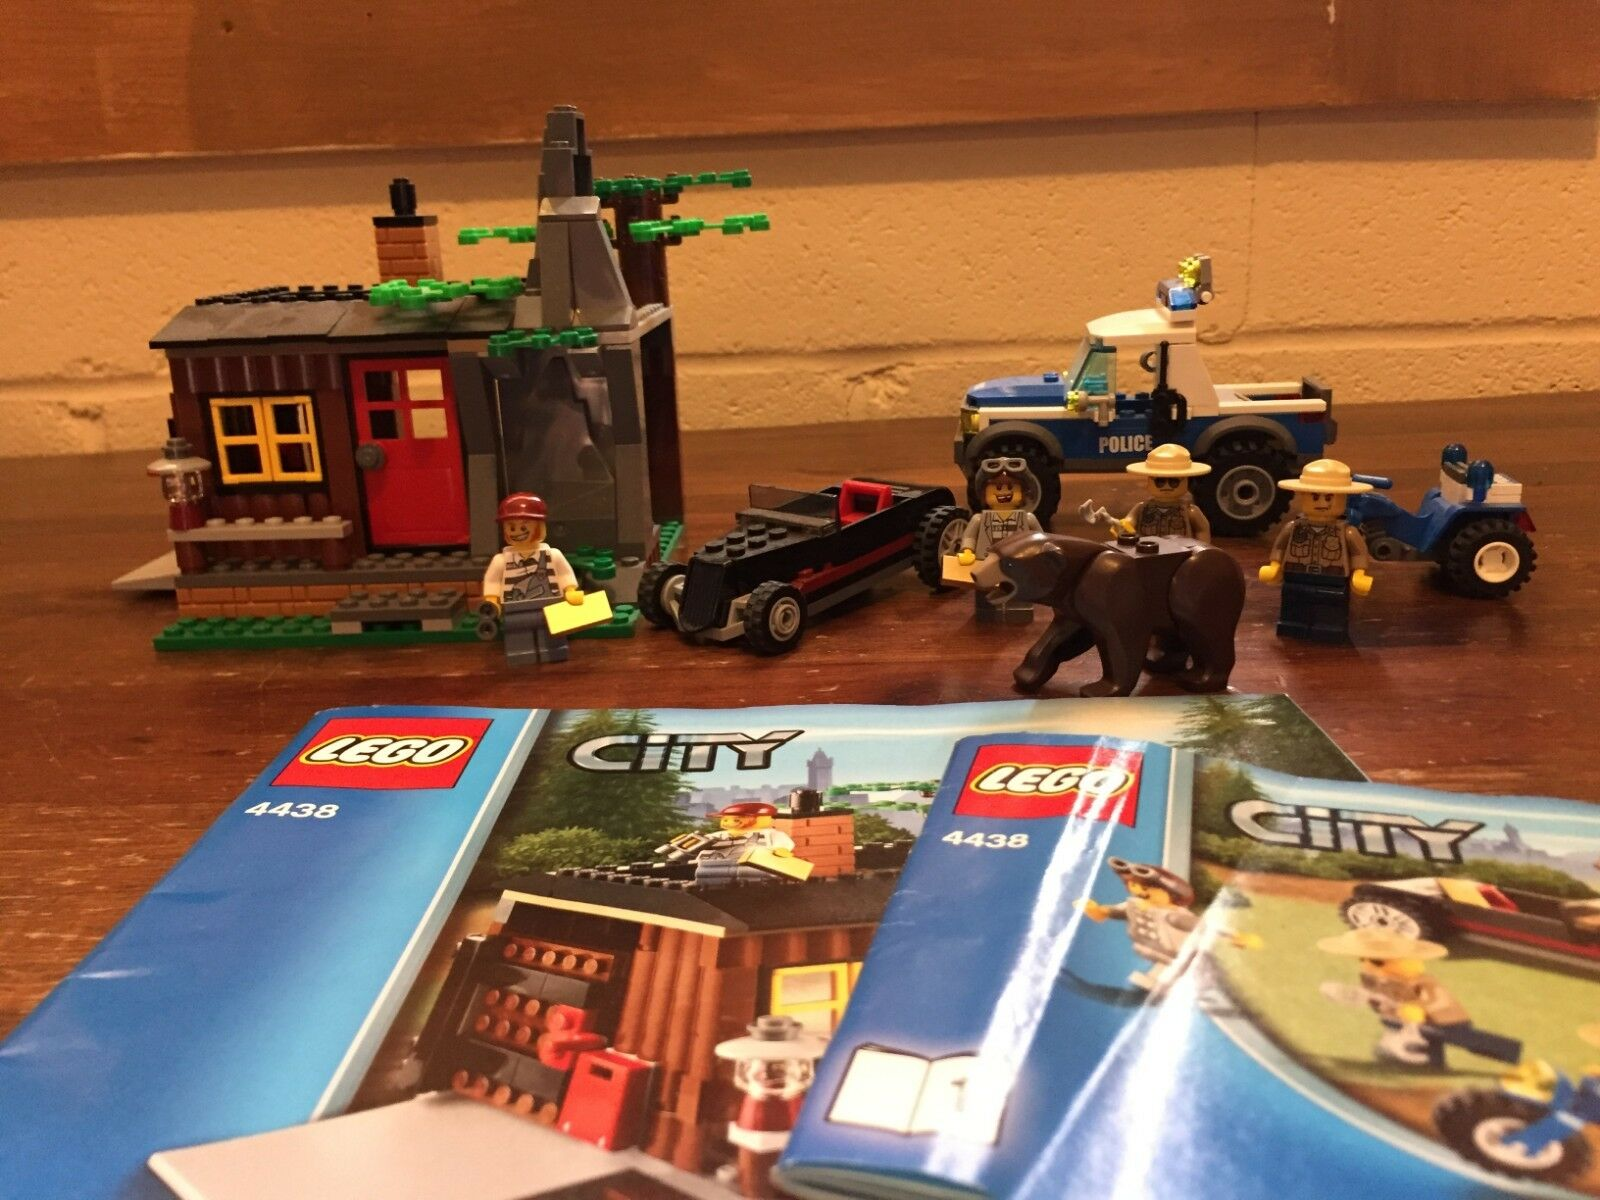 Lego City Robber's Hideout 4438 Exclusive Set